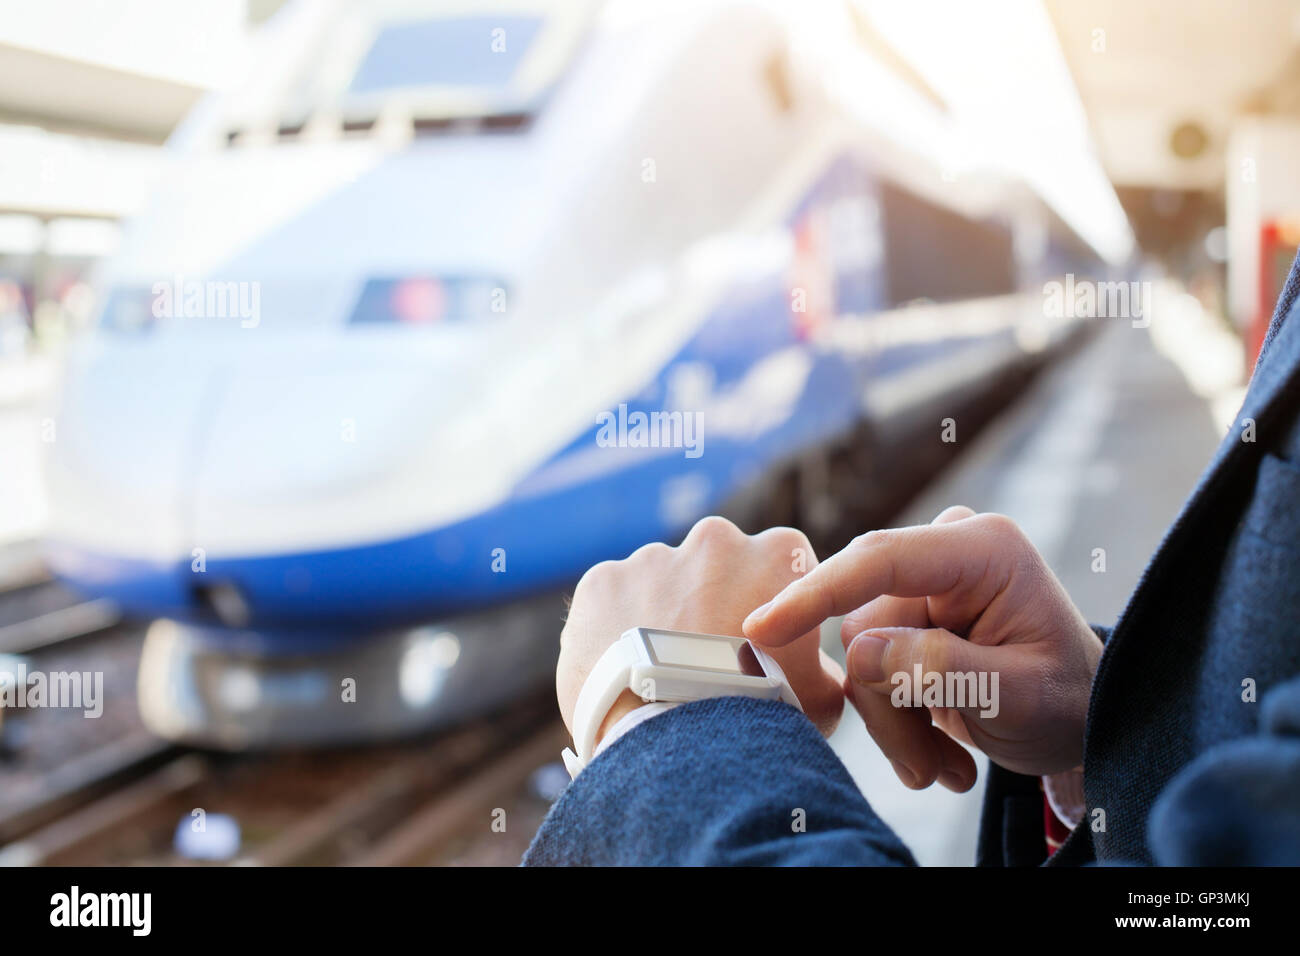 Passager utilisant smart watch at train station Photo Stock